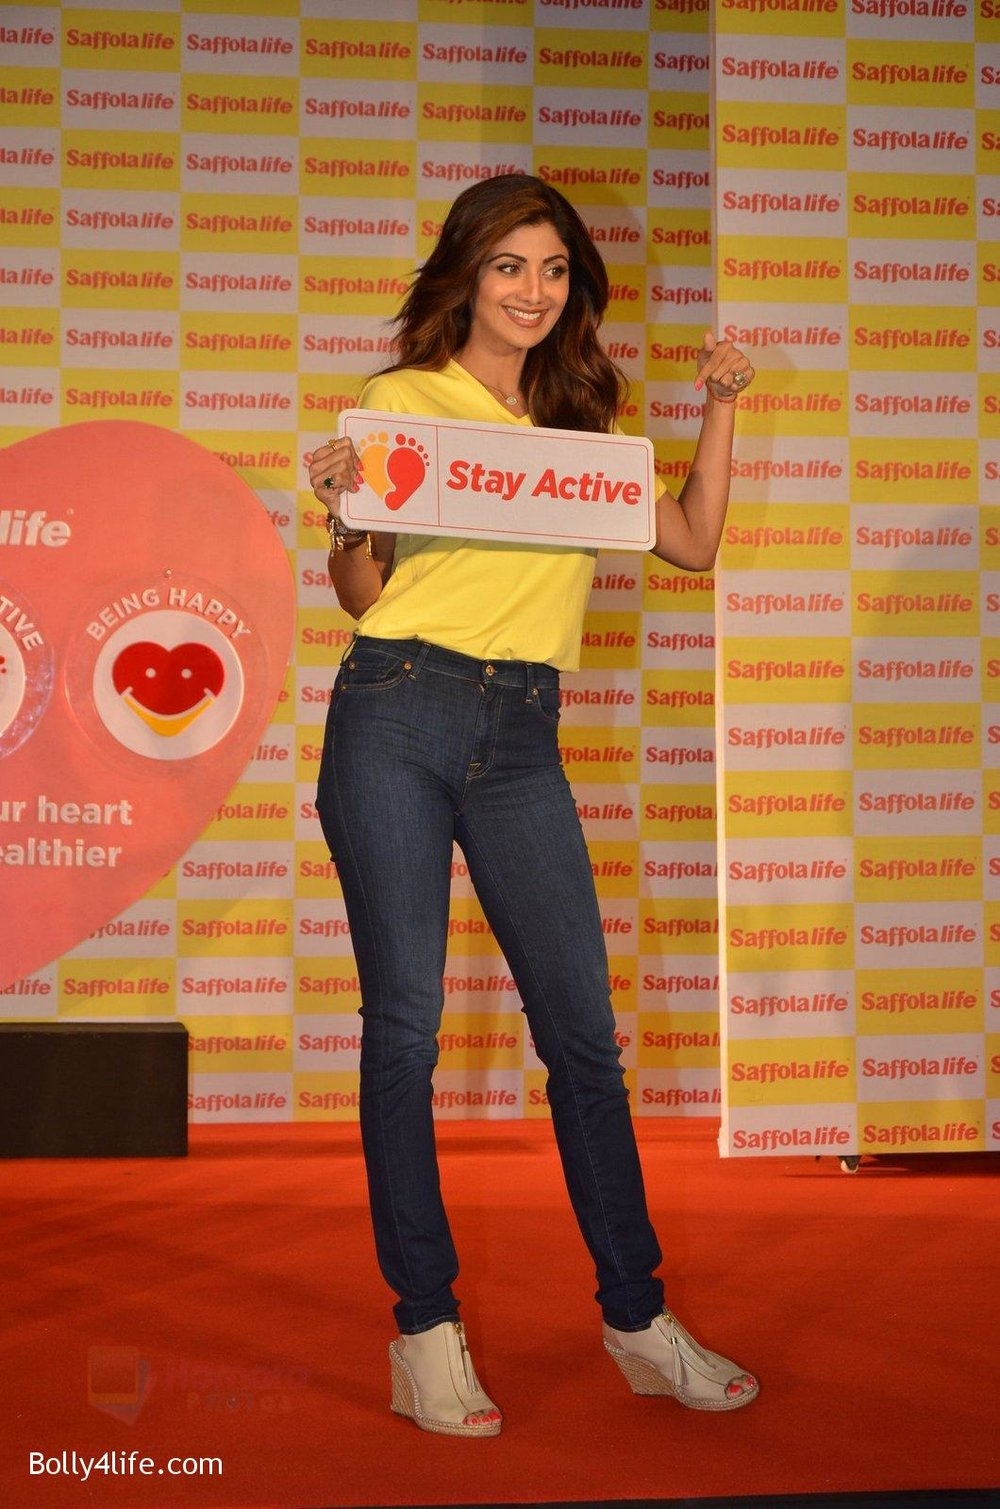 Shilpa-Shetty-during-the-World-Heart-Day-program-organized-by-Saffola-Life-in-Mumbai-on-28th-Sept-2016-8.jpg